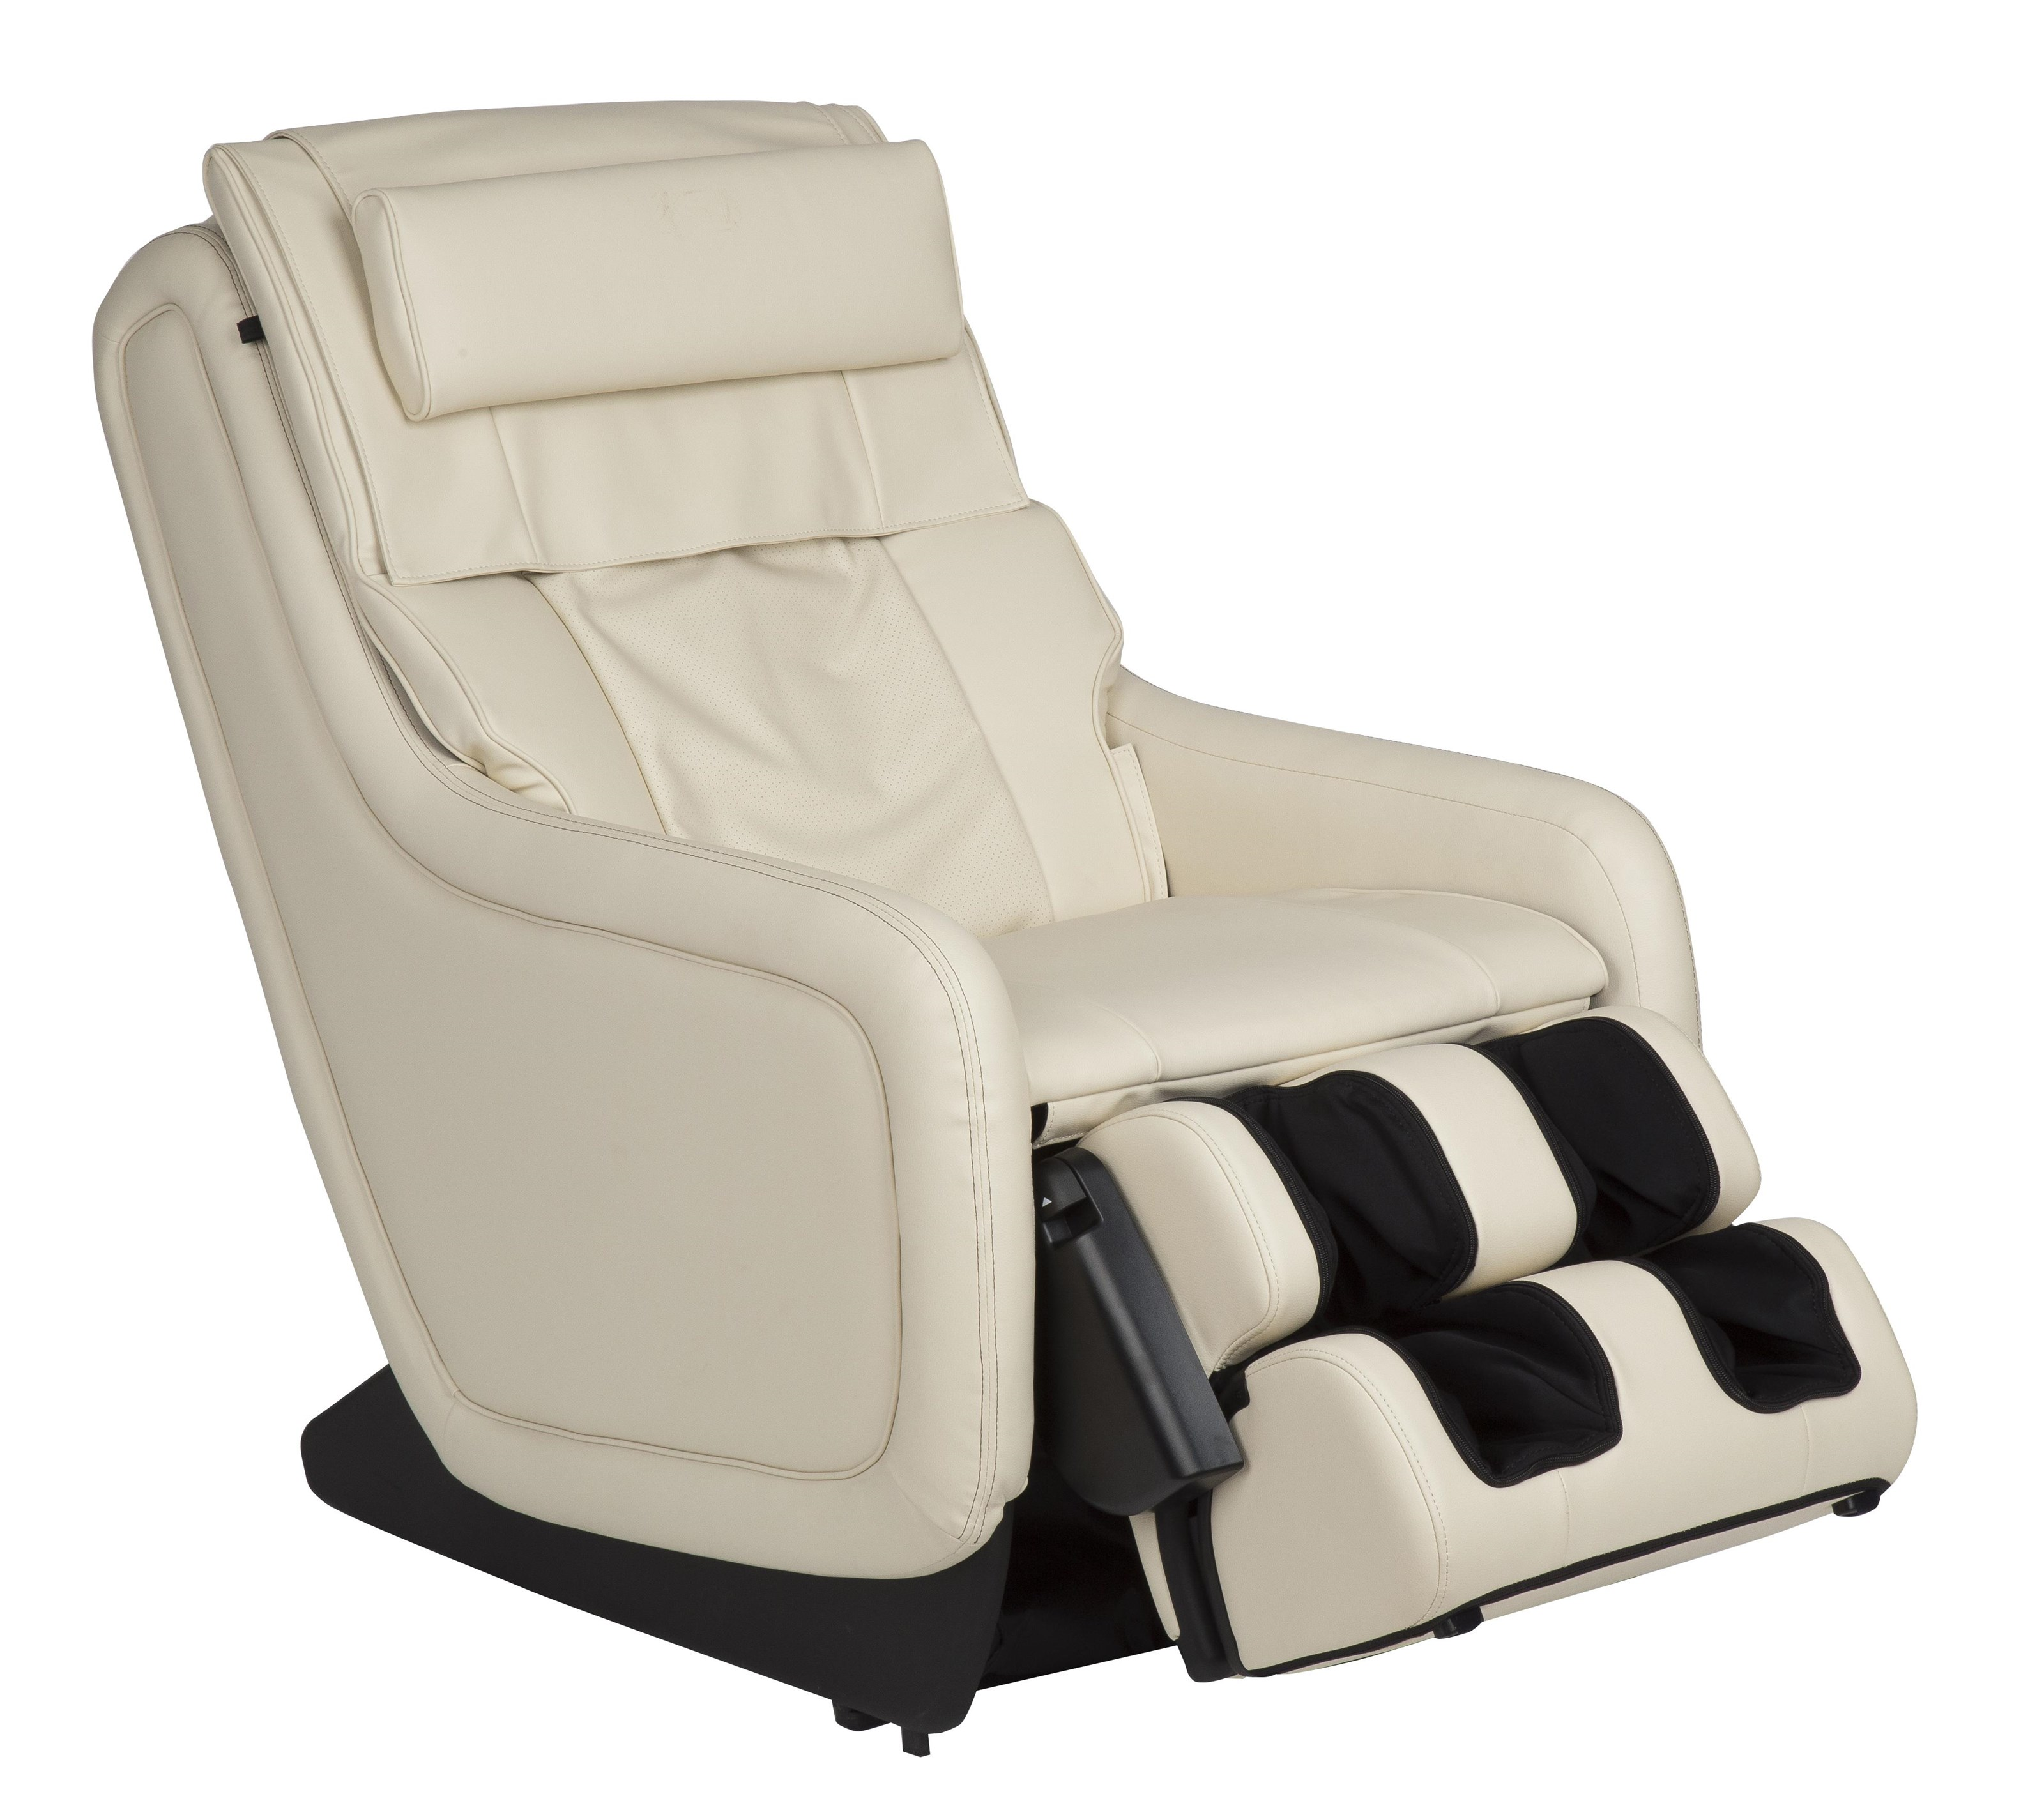 Human Touch Immersion Seating ZeroG 5.0 Massage Chair - Item Number: 100-ZG50-003